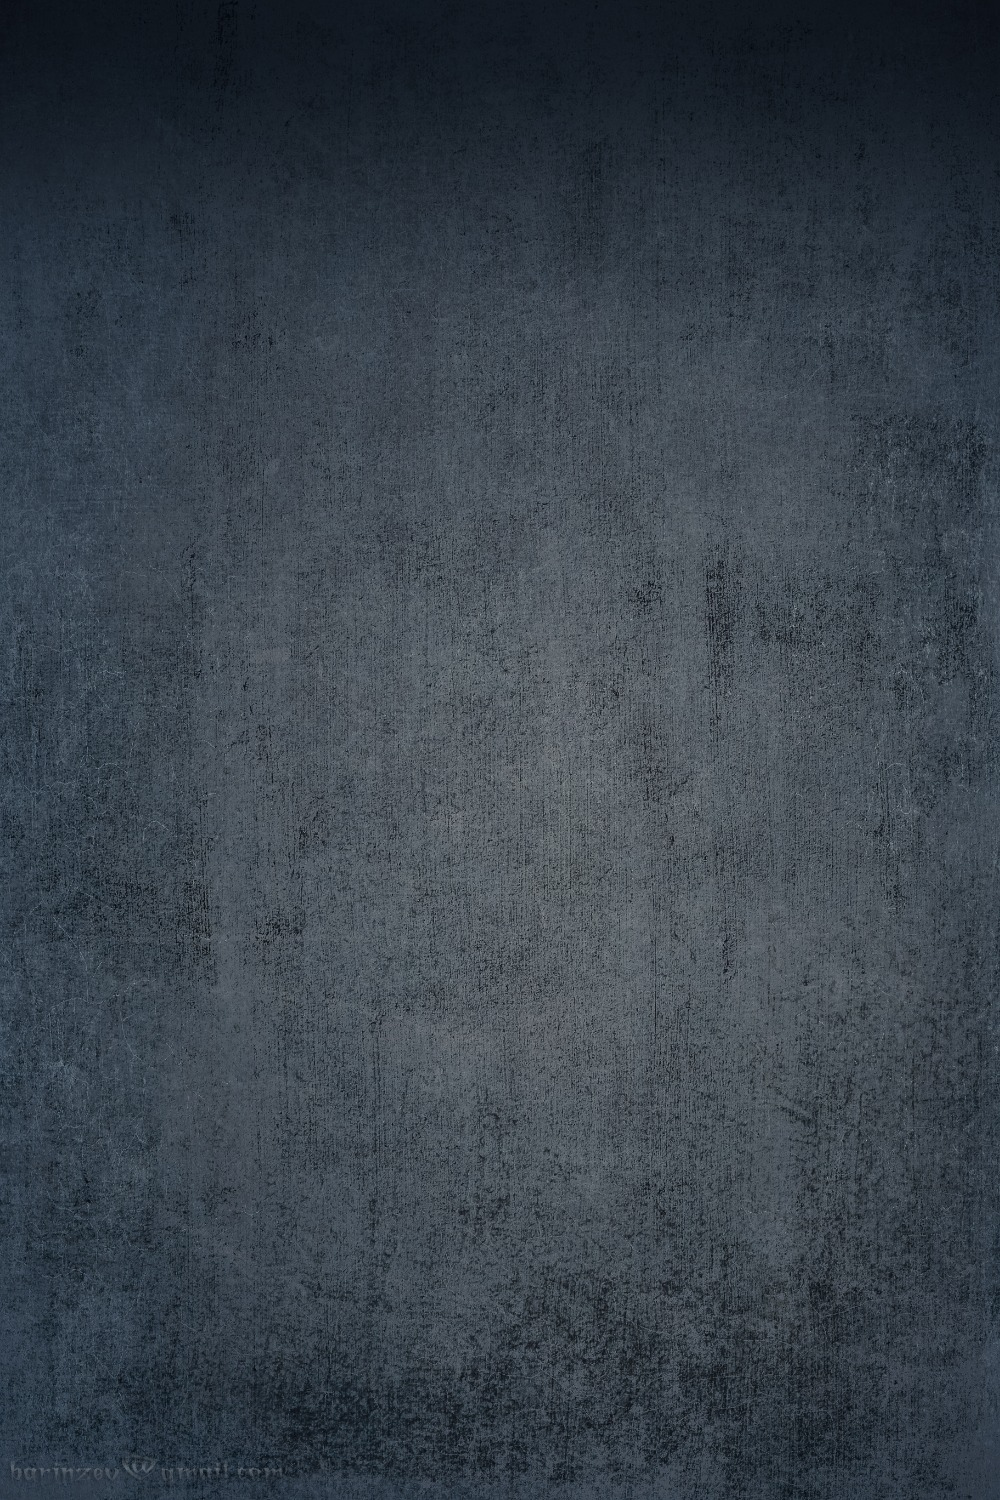 Gray Color Photography Background For Christmas Vinyl Backdrops Photo Studio Kids Photos